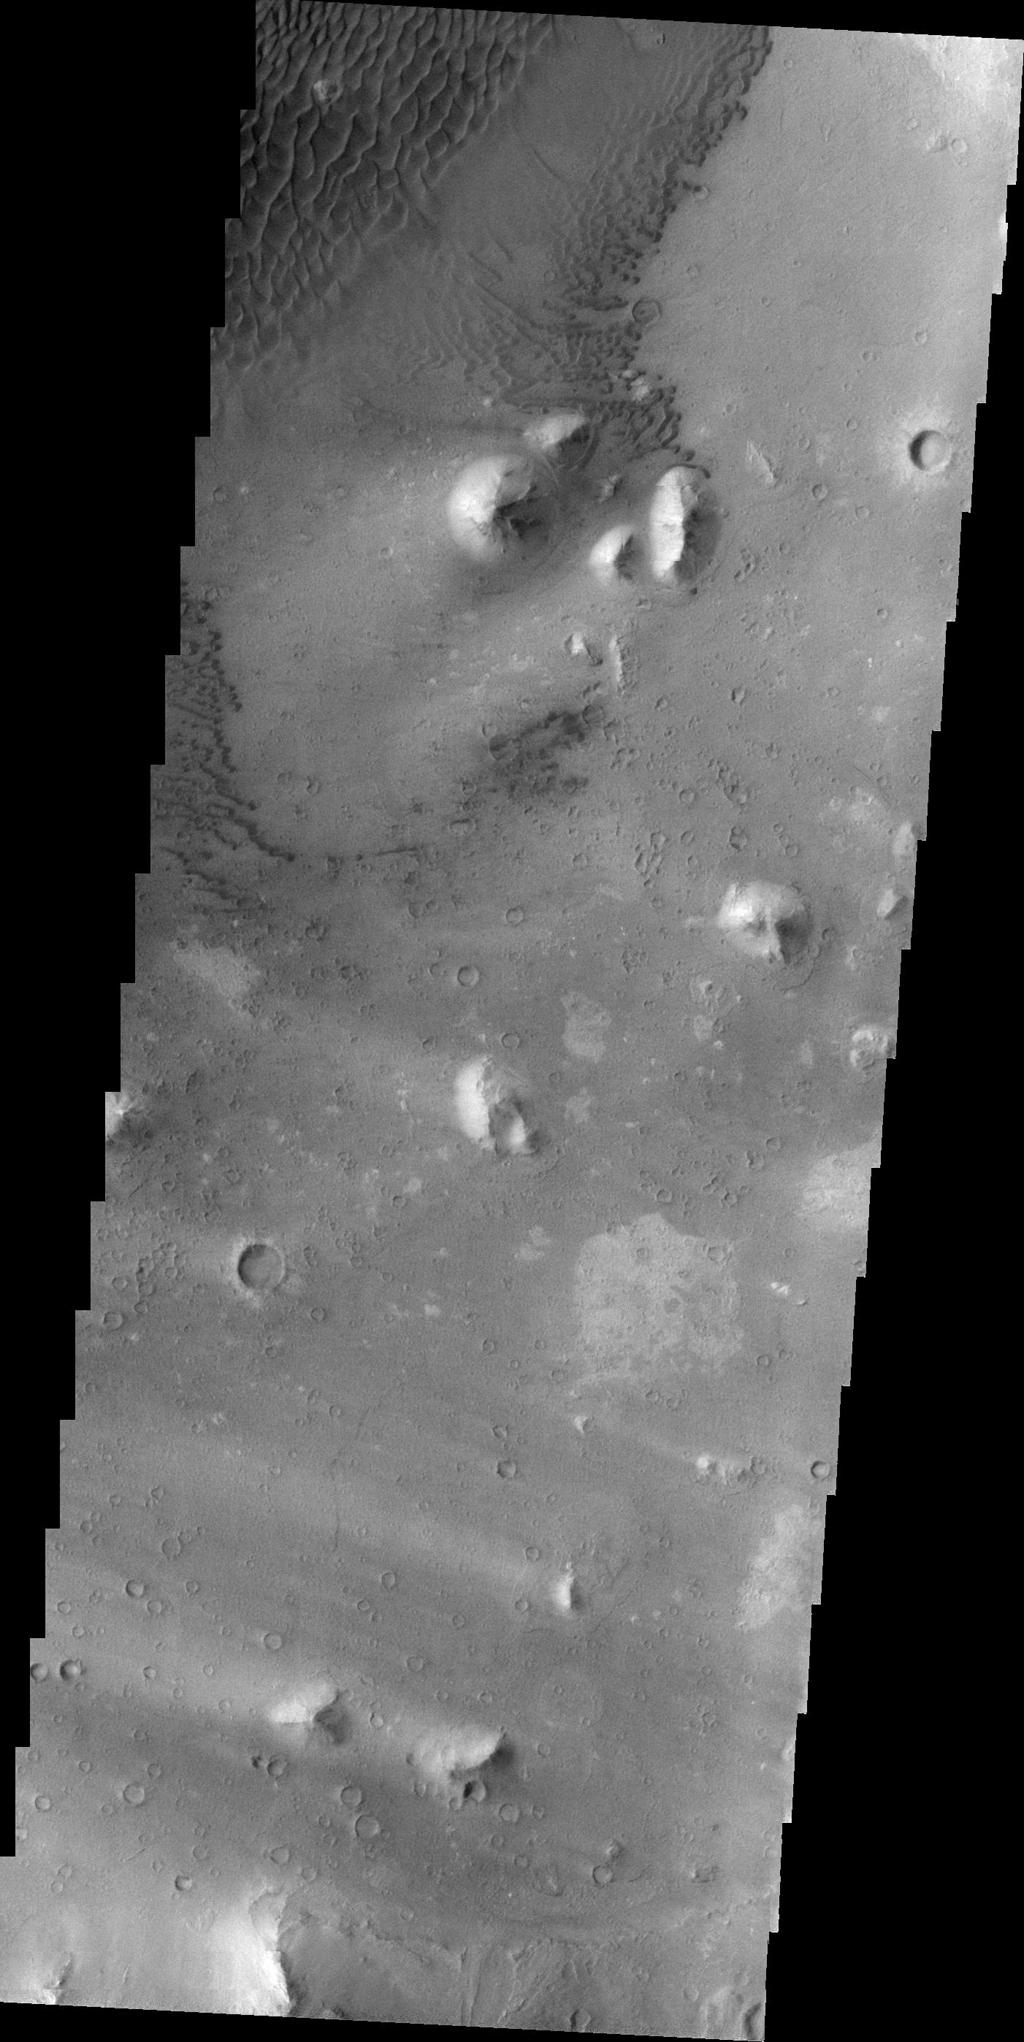 This image, taken by NASA's 2001 Mars Odyssey spacecraft, shows part of the floor of Ganges Chasma. Sand dunes and windstreaks indicate long term wind action in the area.